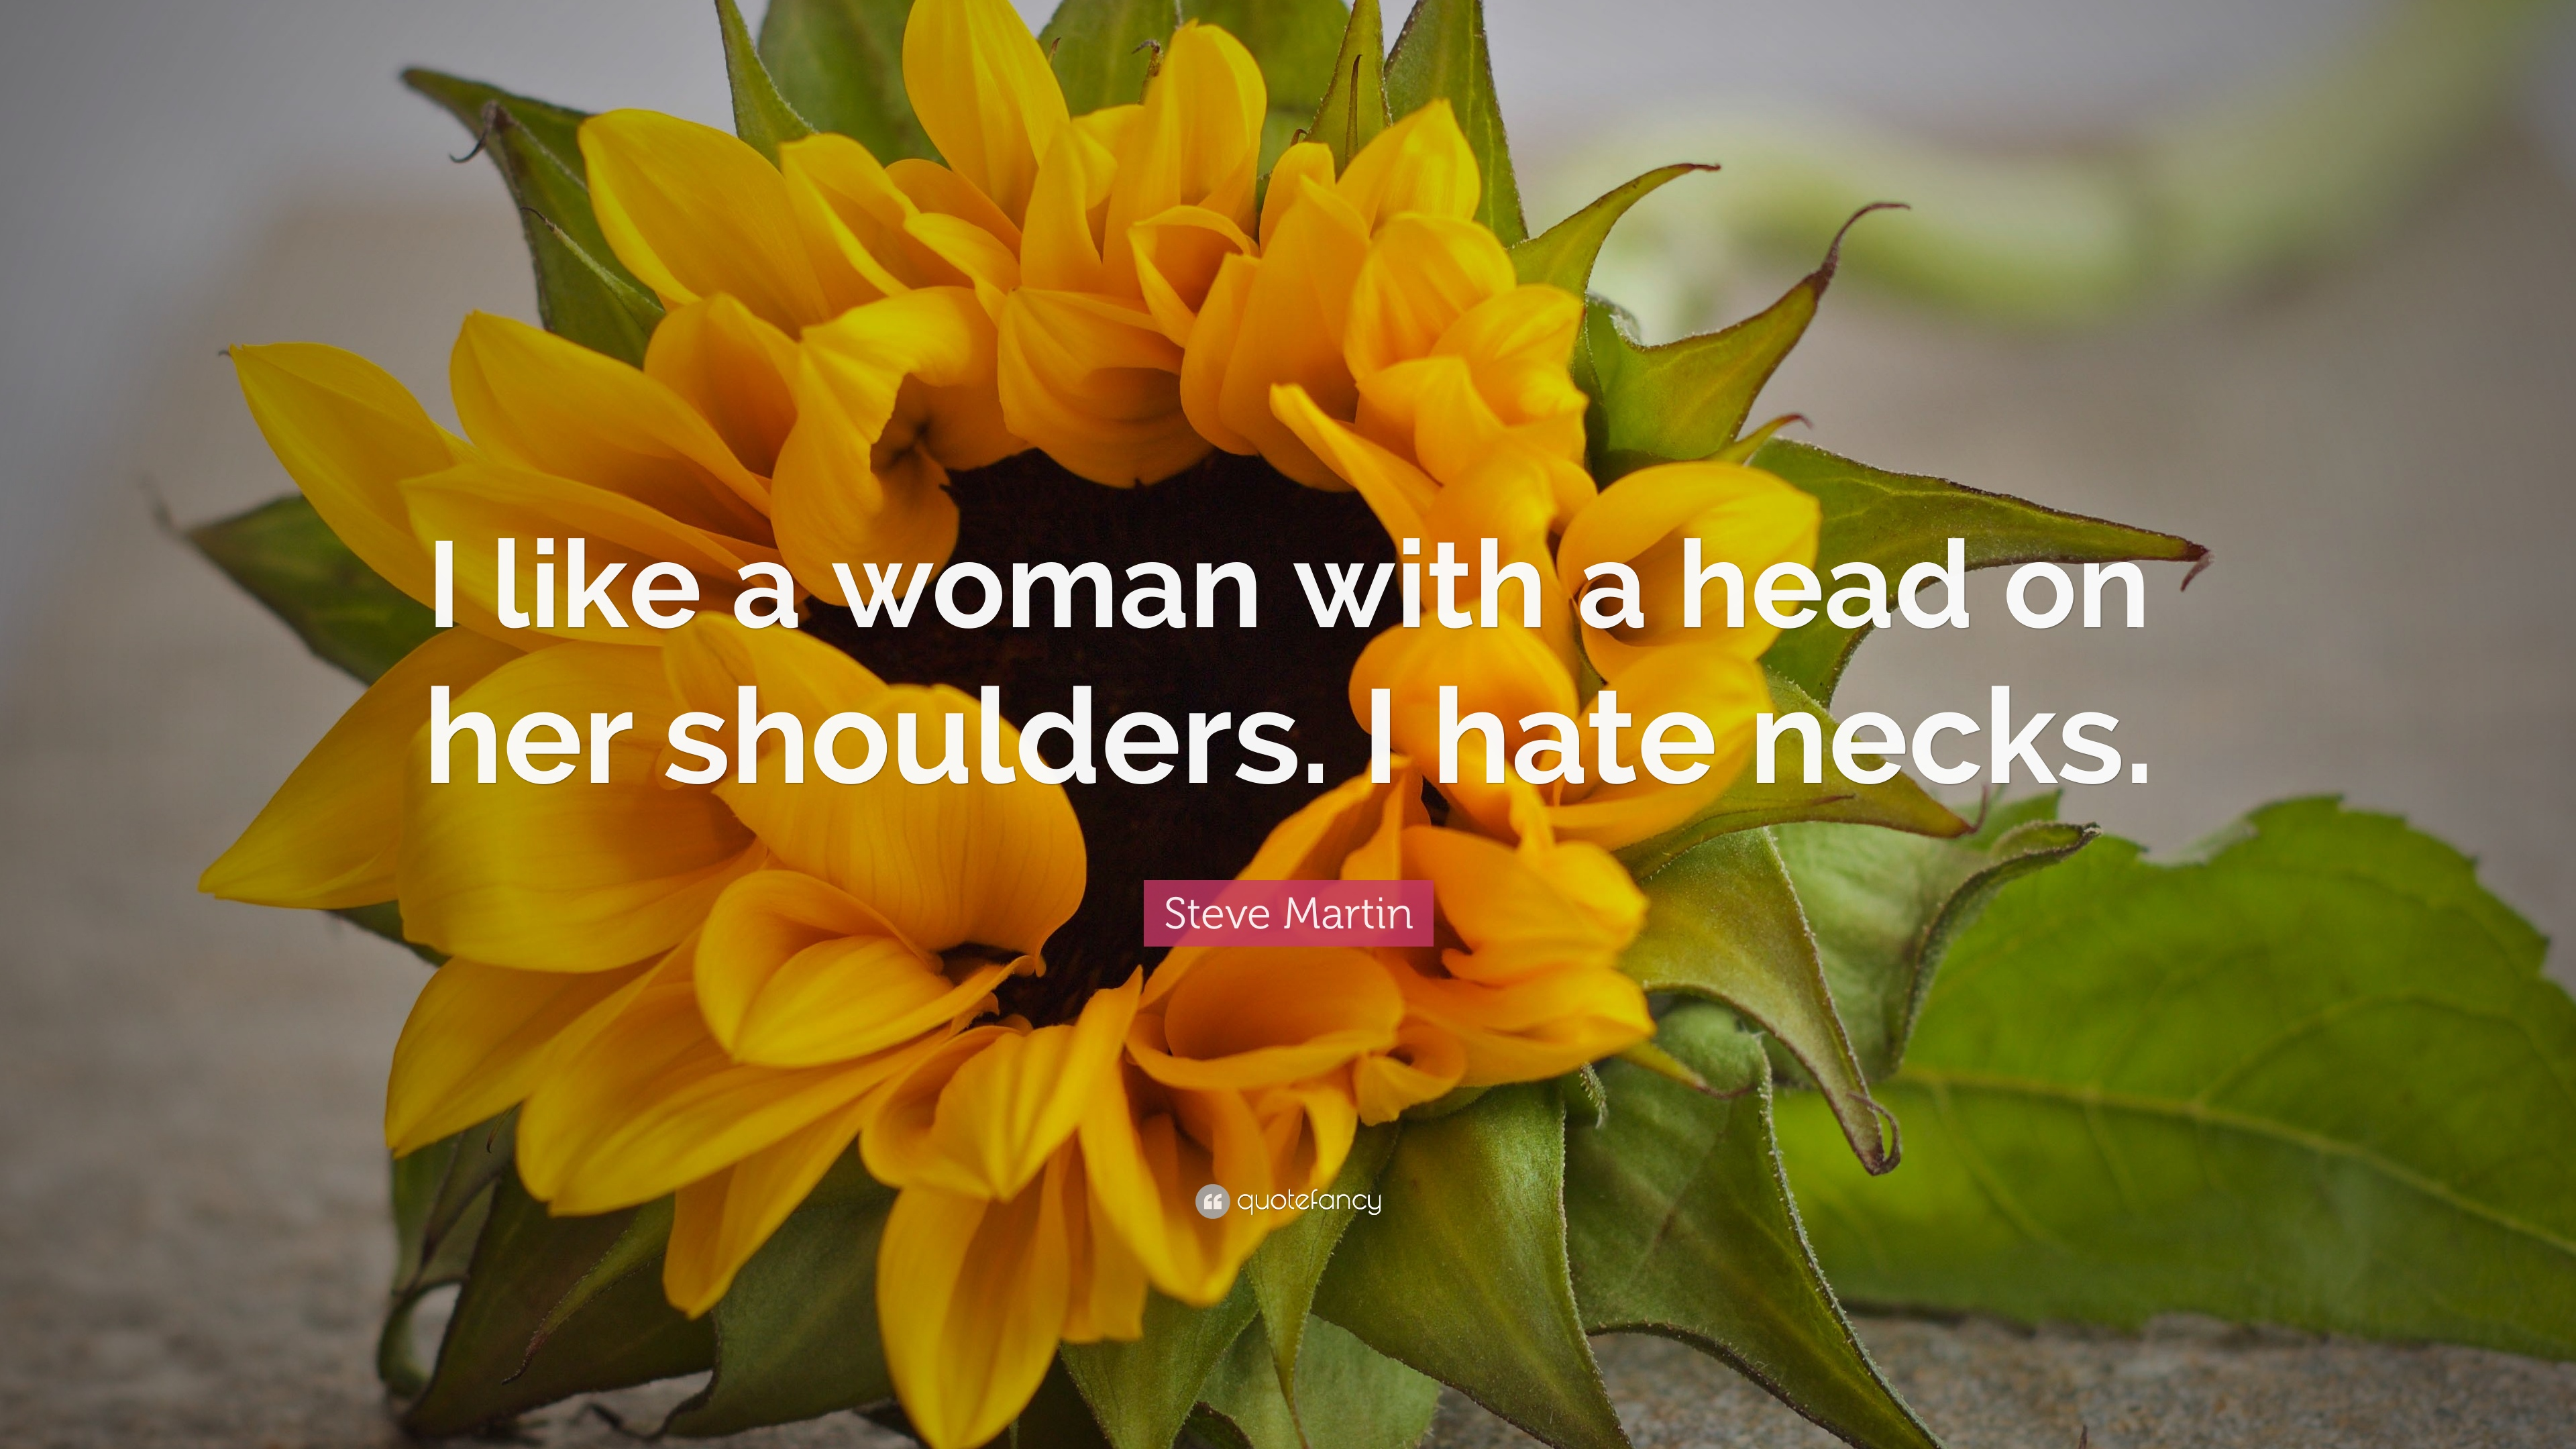 Steve martin quote i like a woman with a head on her shoulders i steve martin quote i like a woman with a head on her shoulders mightylinksfo